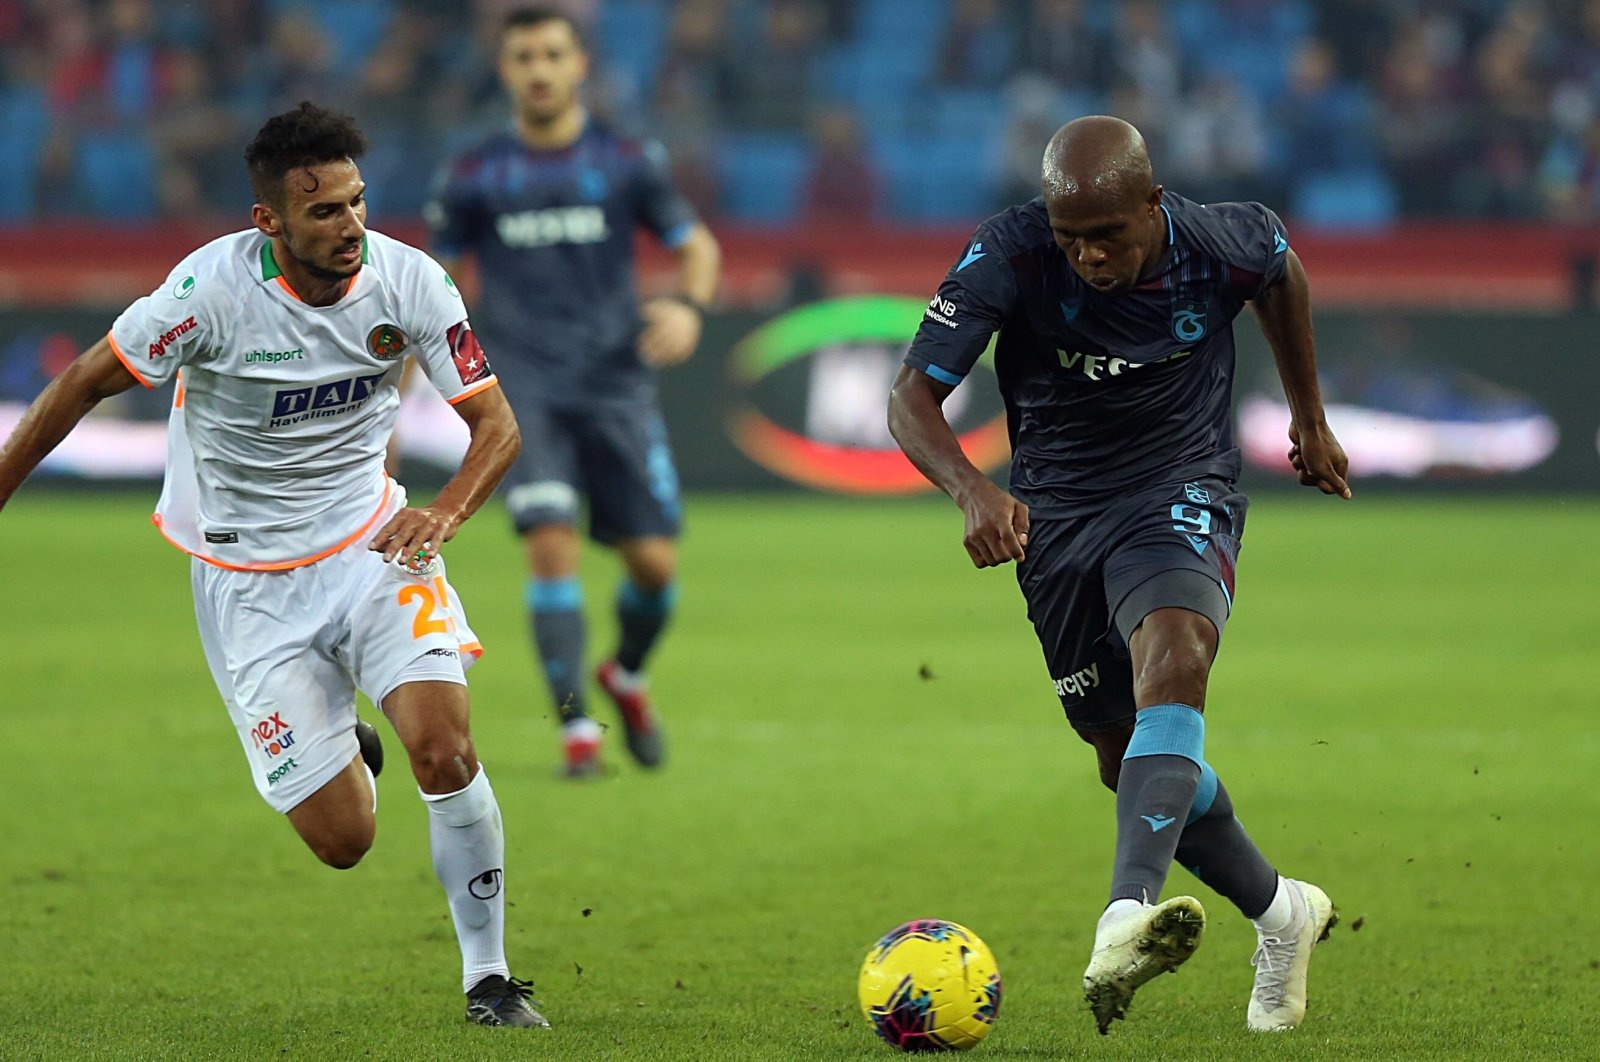 Trabzonspor's Anthony Nwakaeme and Alanyaspor's Onur Bulut vie for the ball during a Süper Lig match in Trabzon, Turkey, Nov. 10, 2019. (AA Photo)